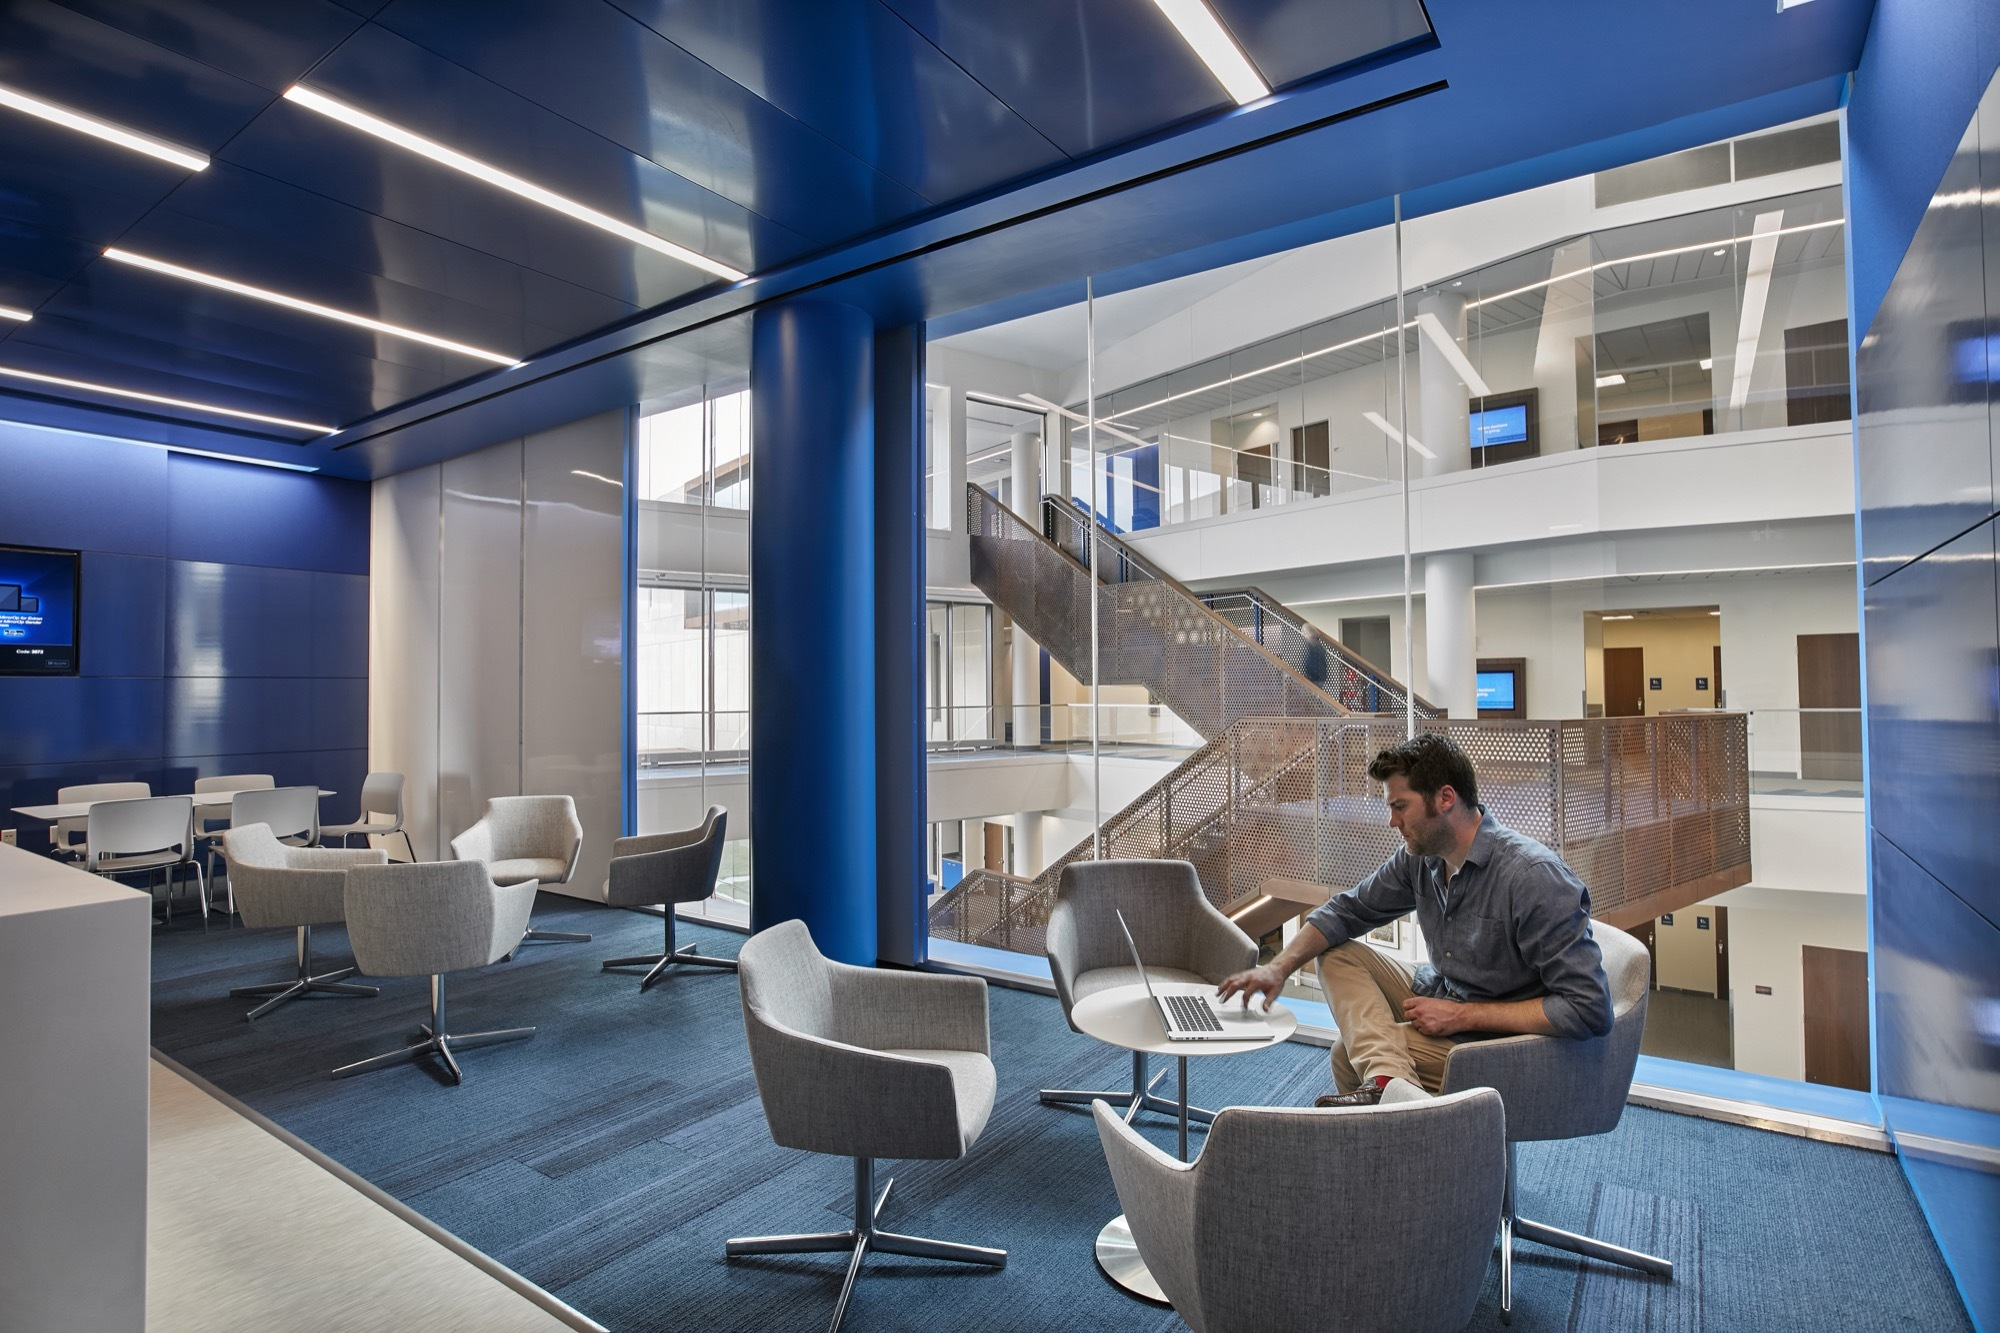 Gallery of capitol federal hall gensler 1 for It company interior design